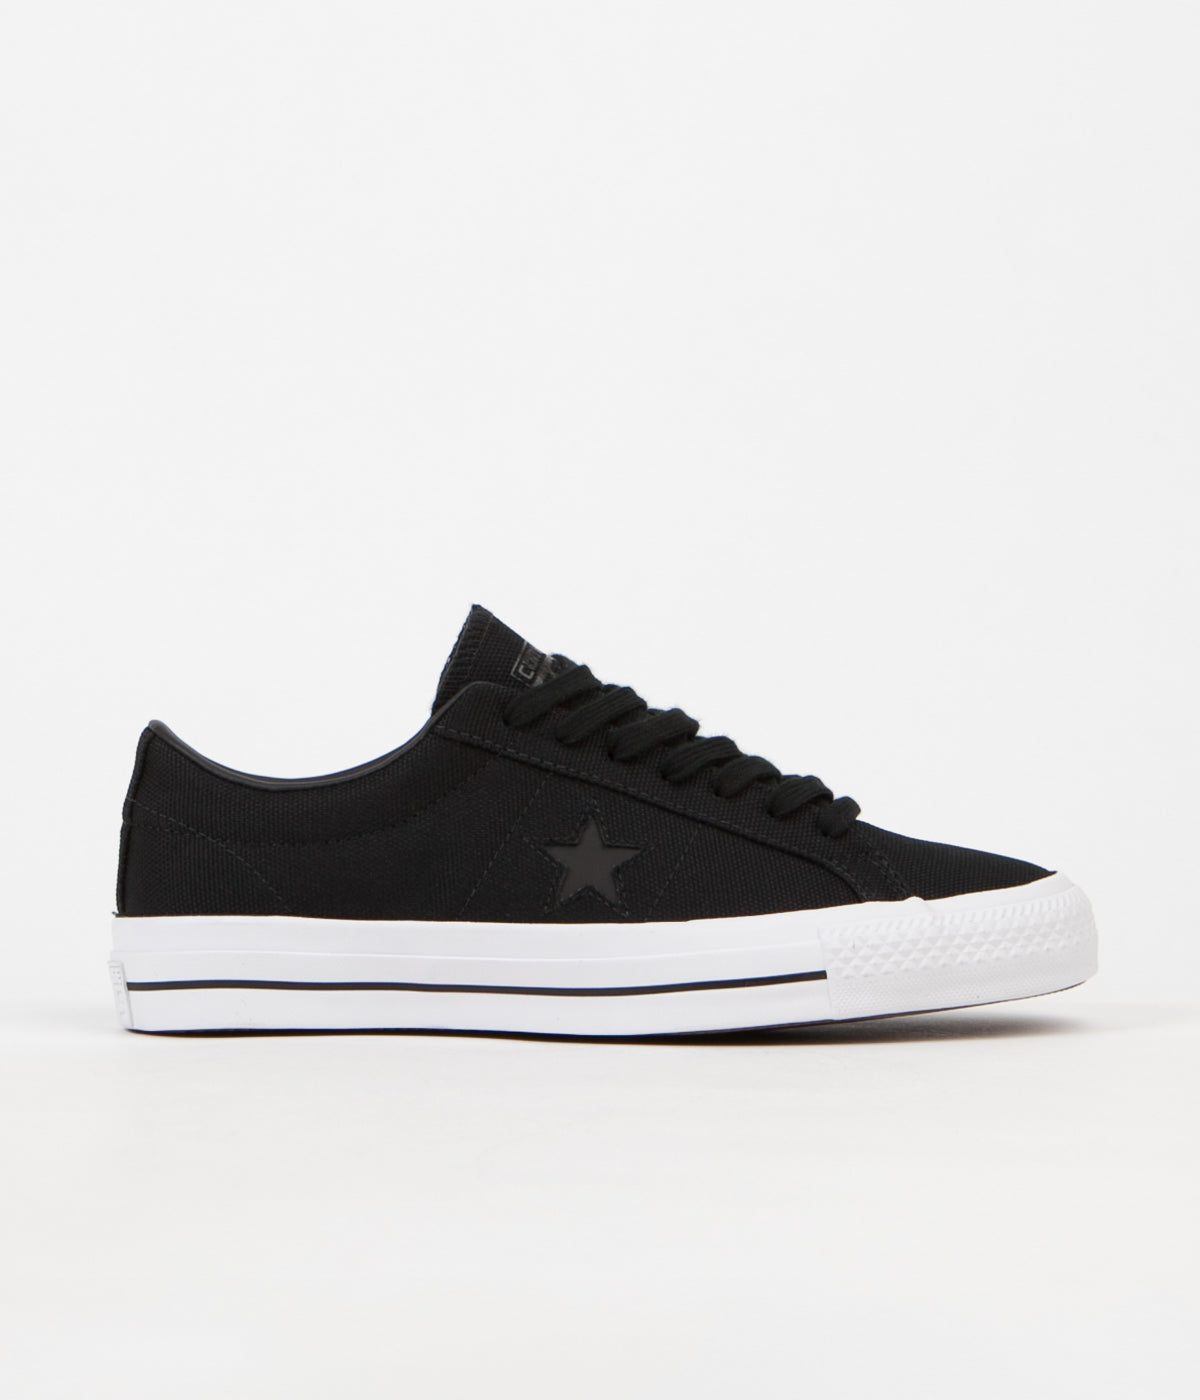 7518ce461bfc ... Converse x Mike Anderson One Star Pro Ox Shoes - Black   Black   White  ...